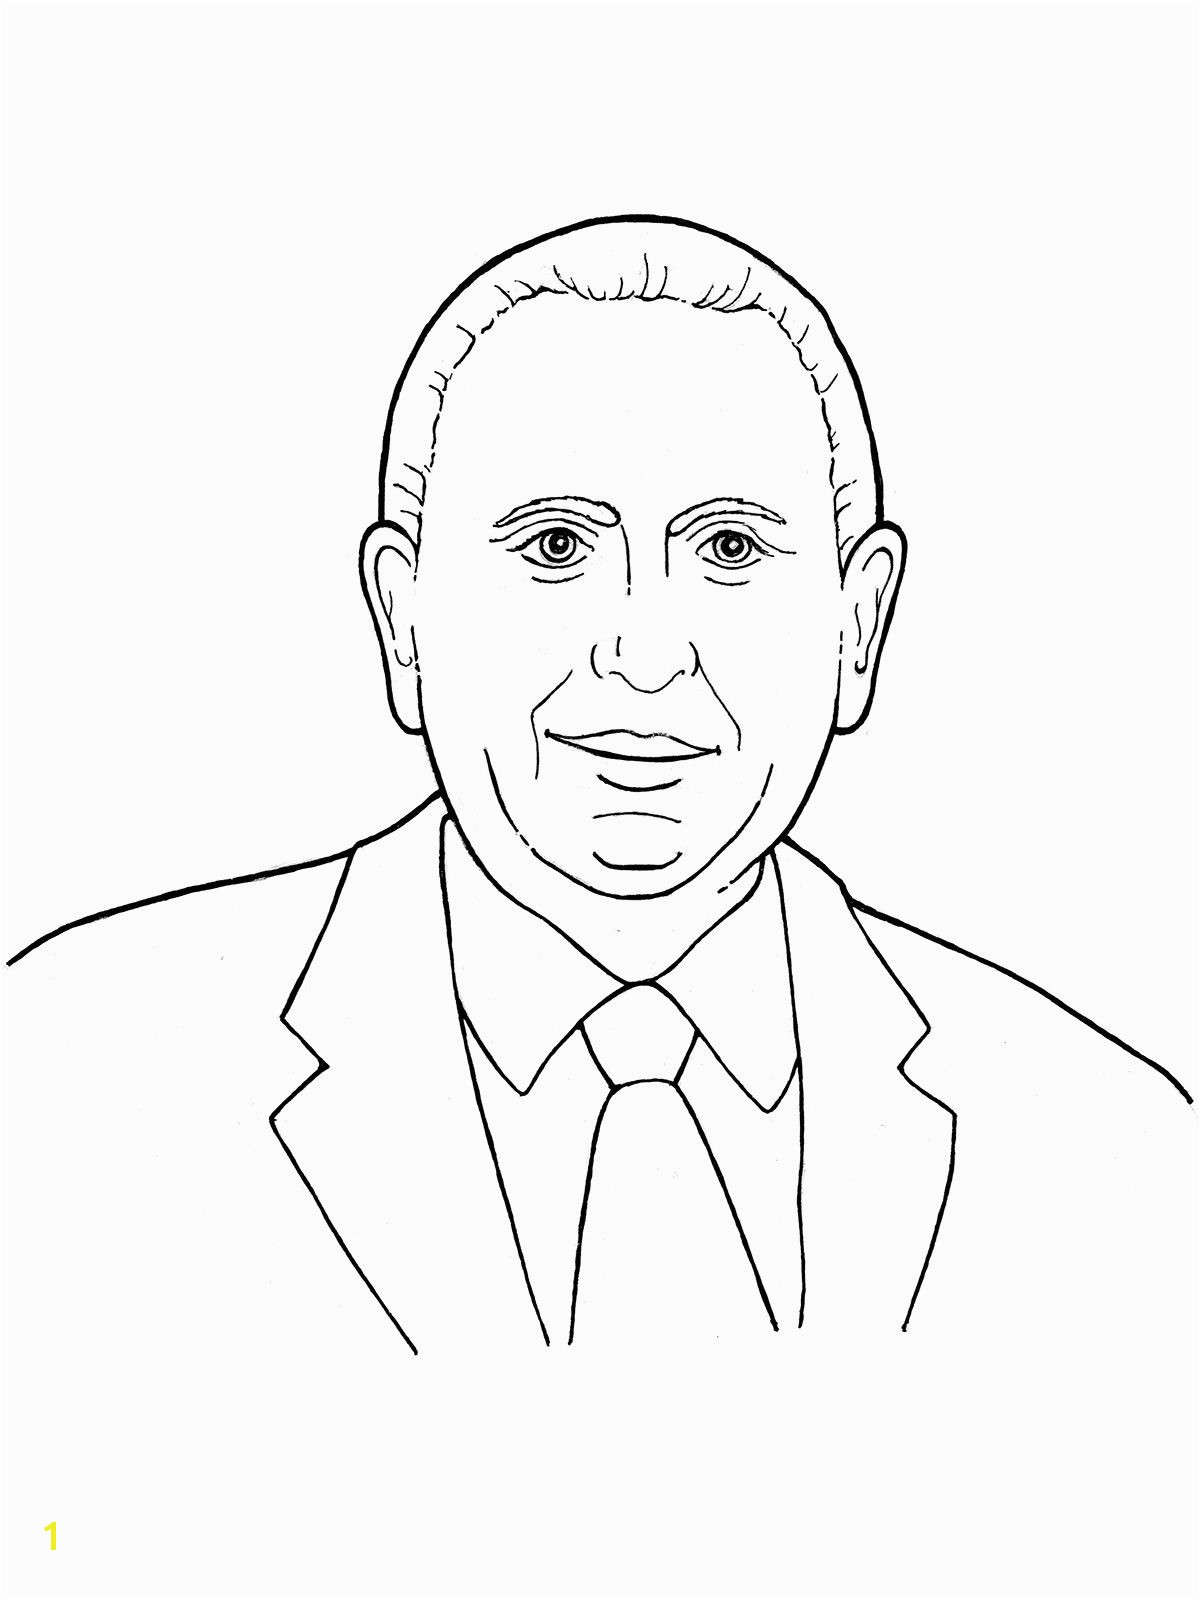 Coloring Page Of Thomas S Monson An Illustration Of Our Latter Day Prophet Thomas S Monson